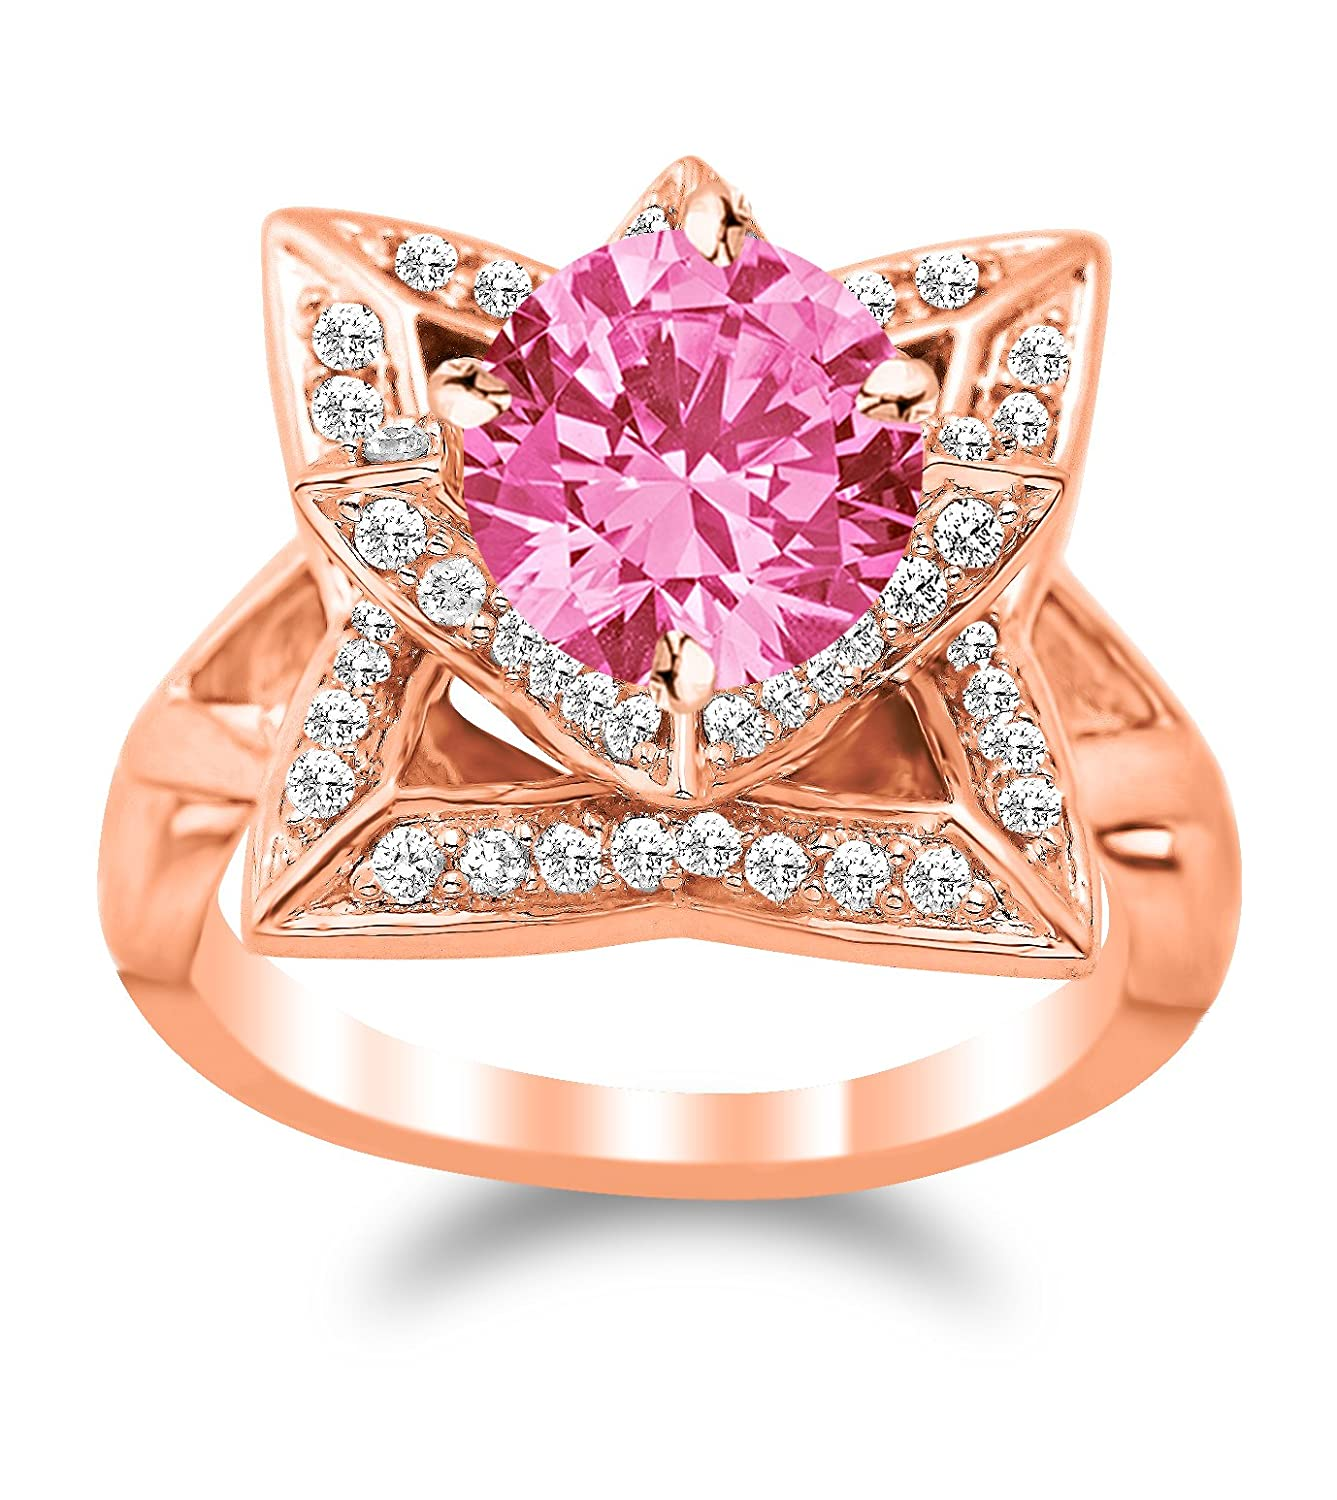 Lotus Flower Diamond Engagement Ring with a 1 Carat Pink Sapphire ...